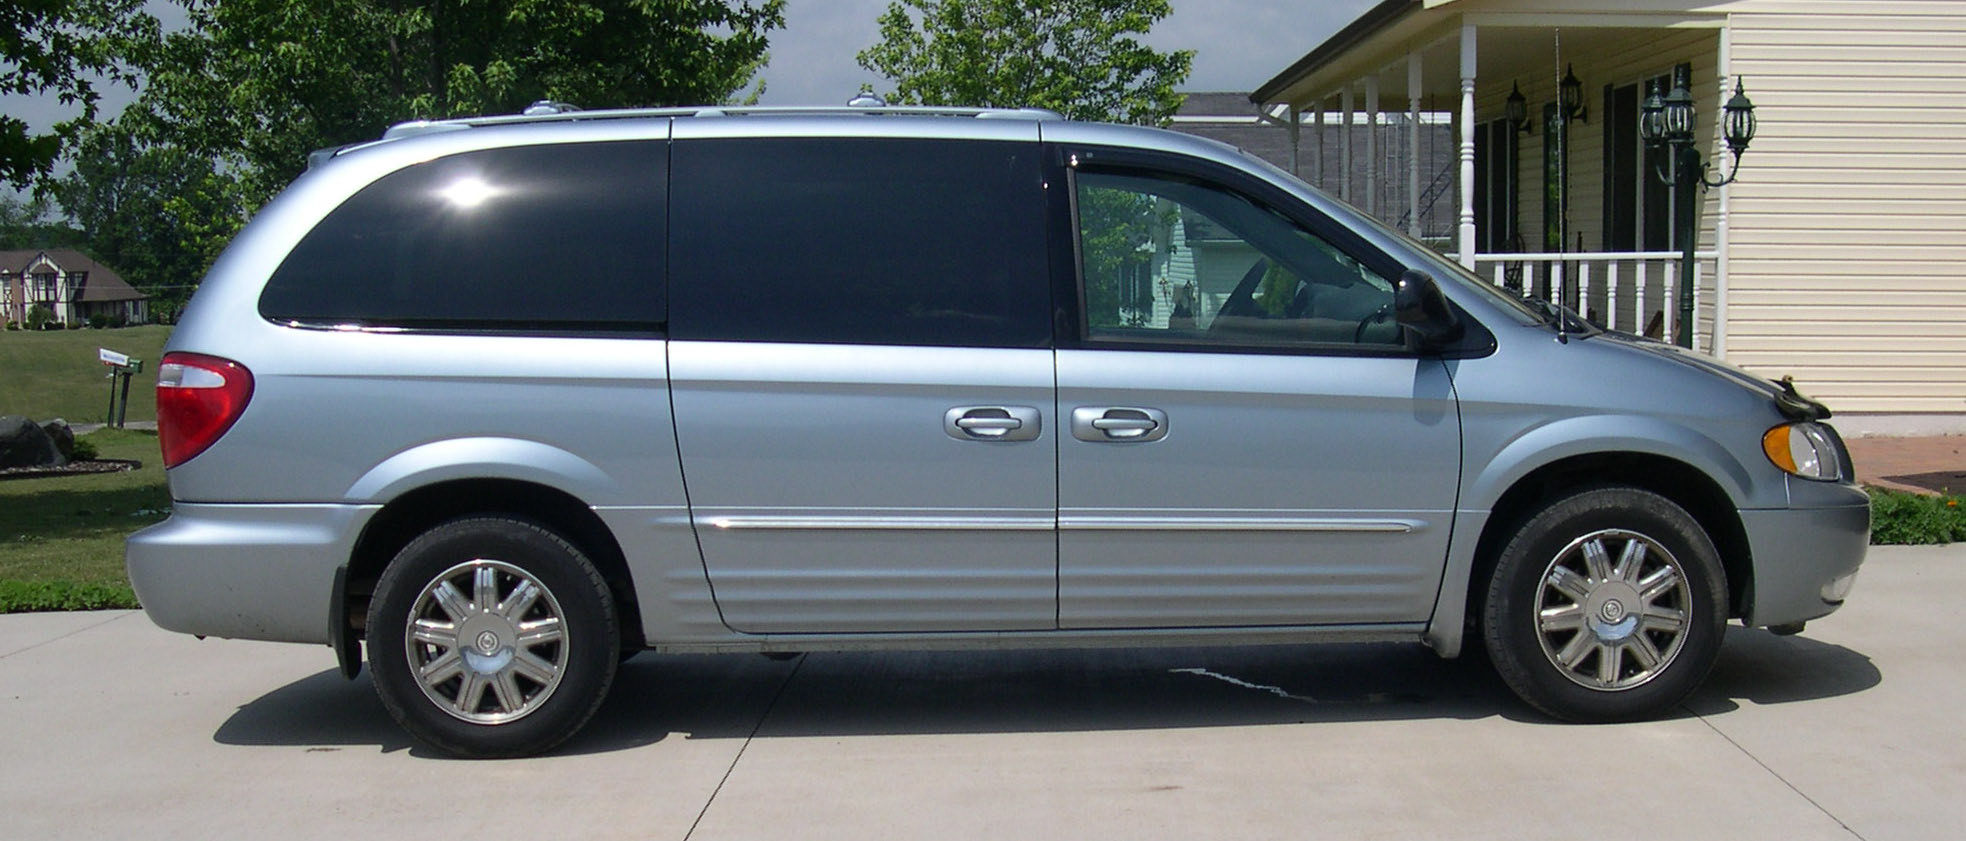 2005 Chrysler Town And Country #5